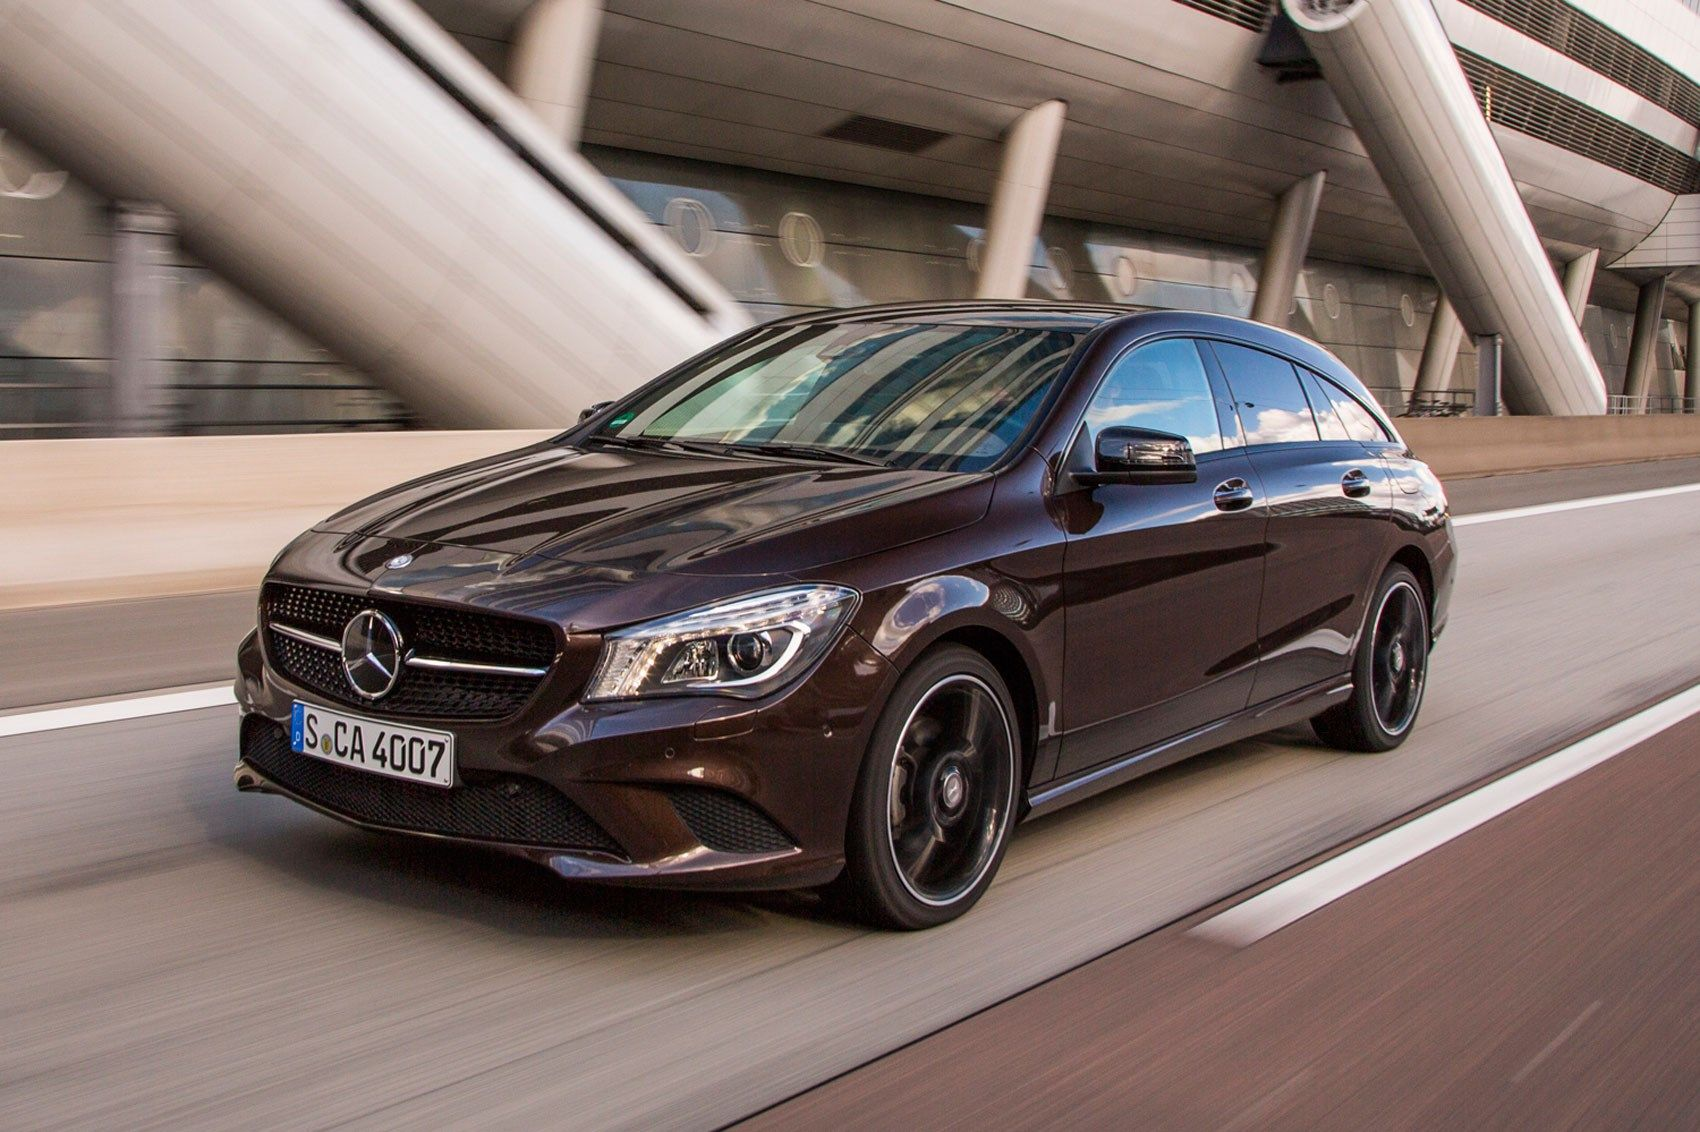 2018 mercedes cla 220 cdi sport specs and price. Black Bedroom Furniture Sets. Home Design Ideas